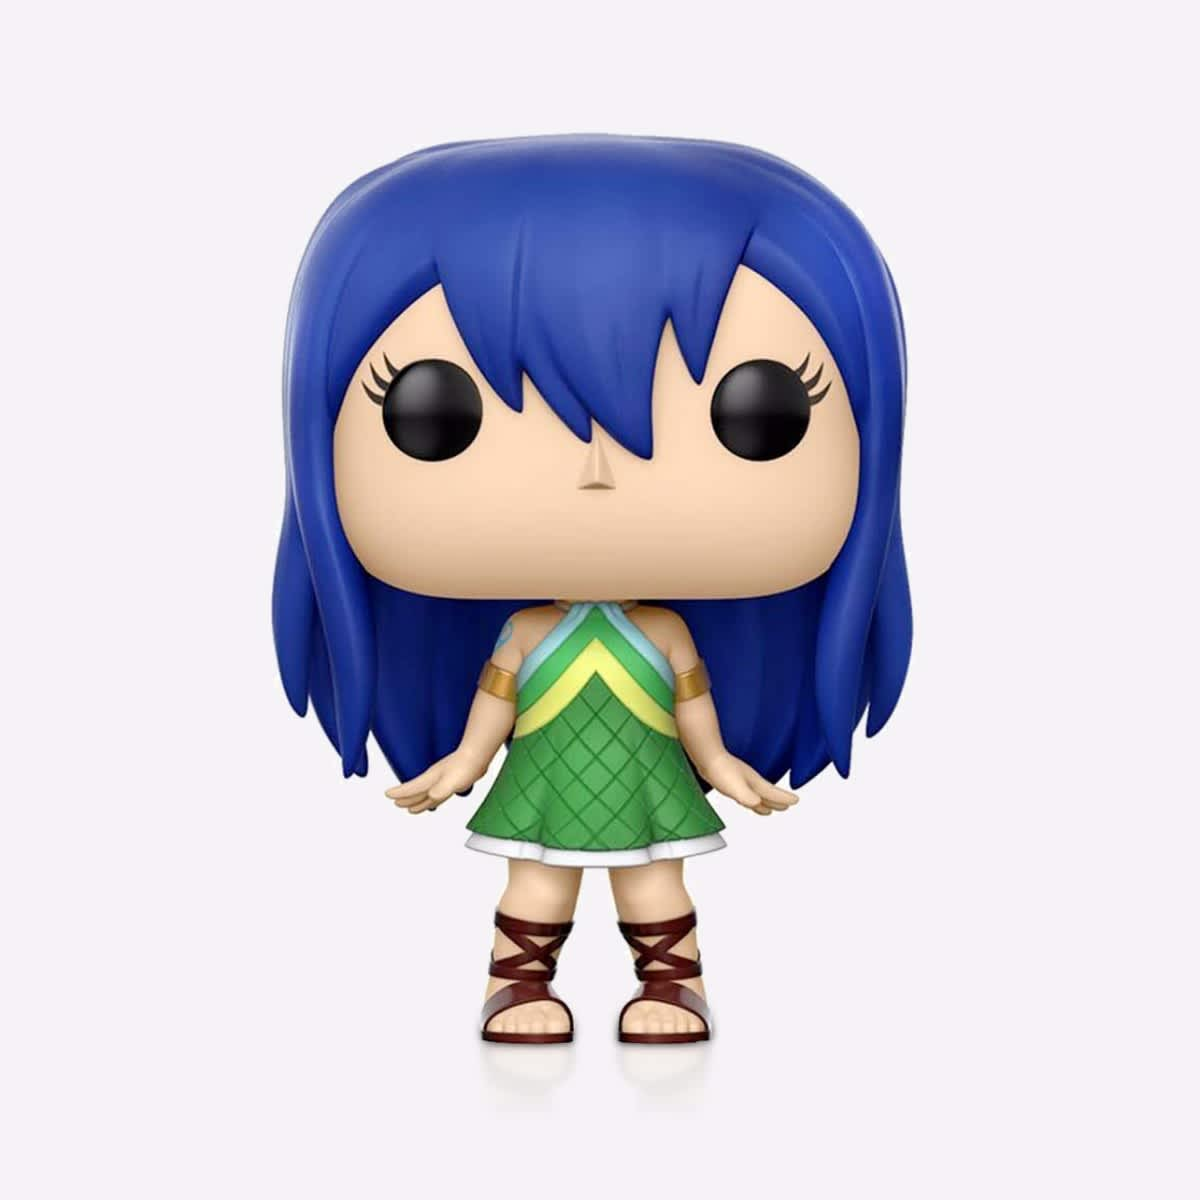 Neo Queen Serenity Funko: Shop Fairy Tail Funko Pop - Wendy Marvell